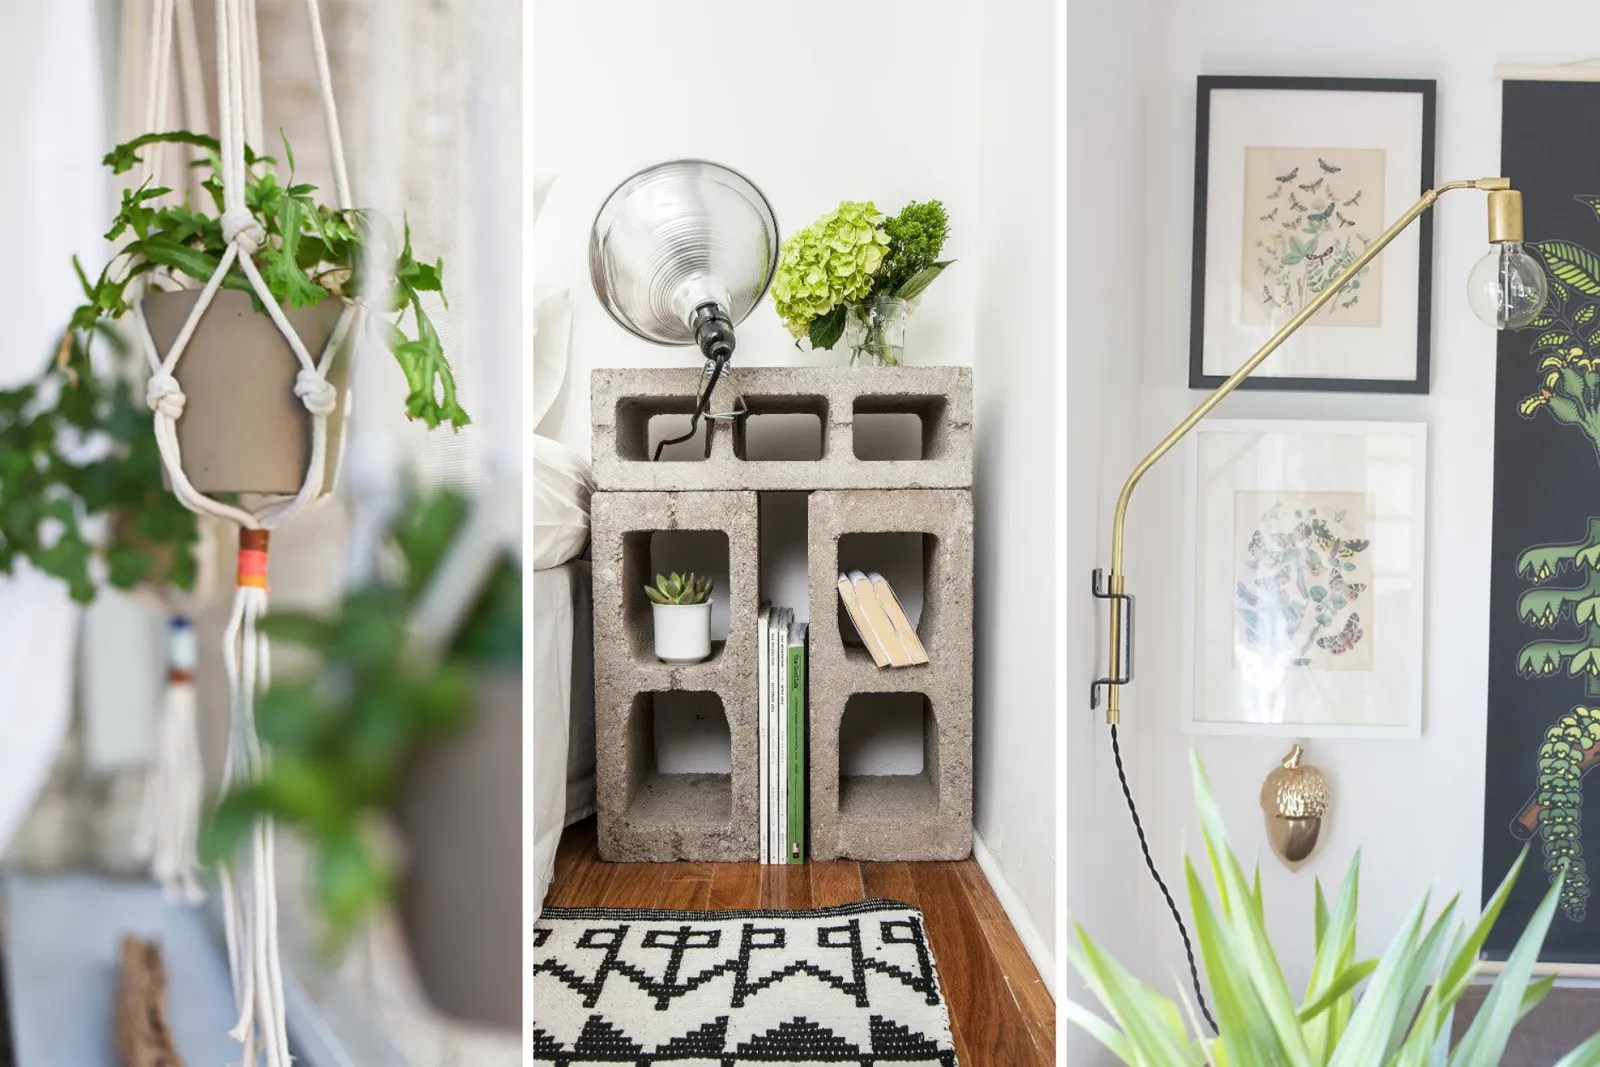 Cool Plants For Your Room 25 Creative Ways To Decorate Your Dorm Room Diy Budget